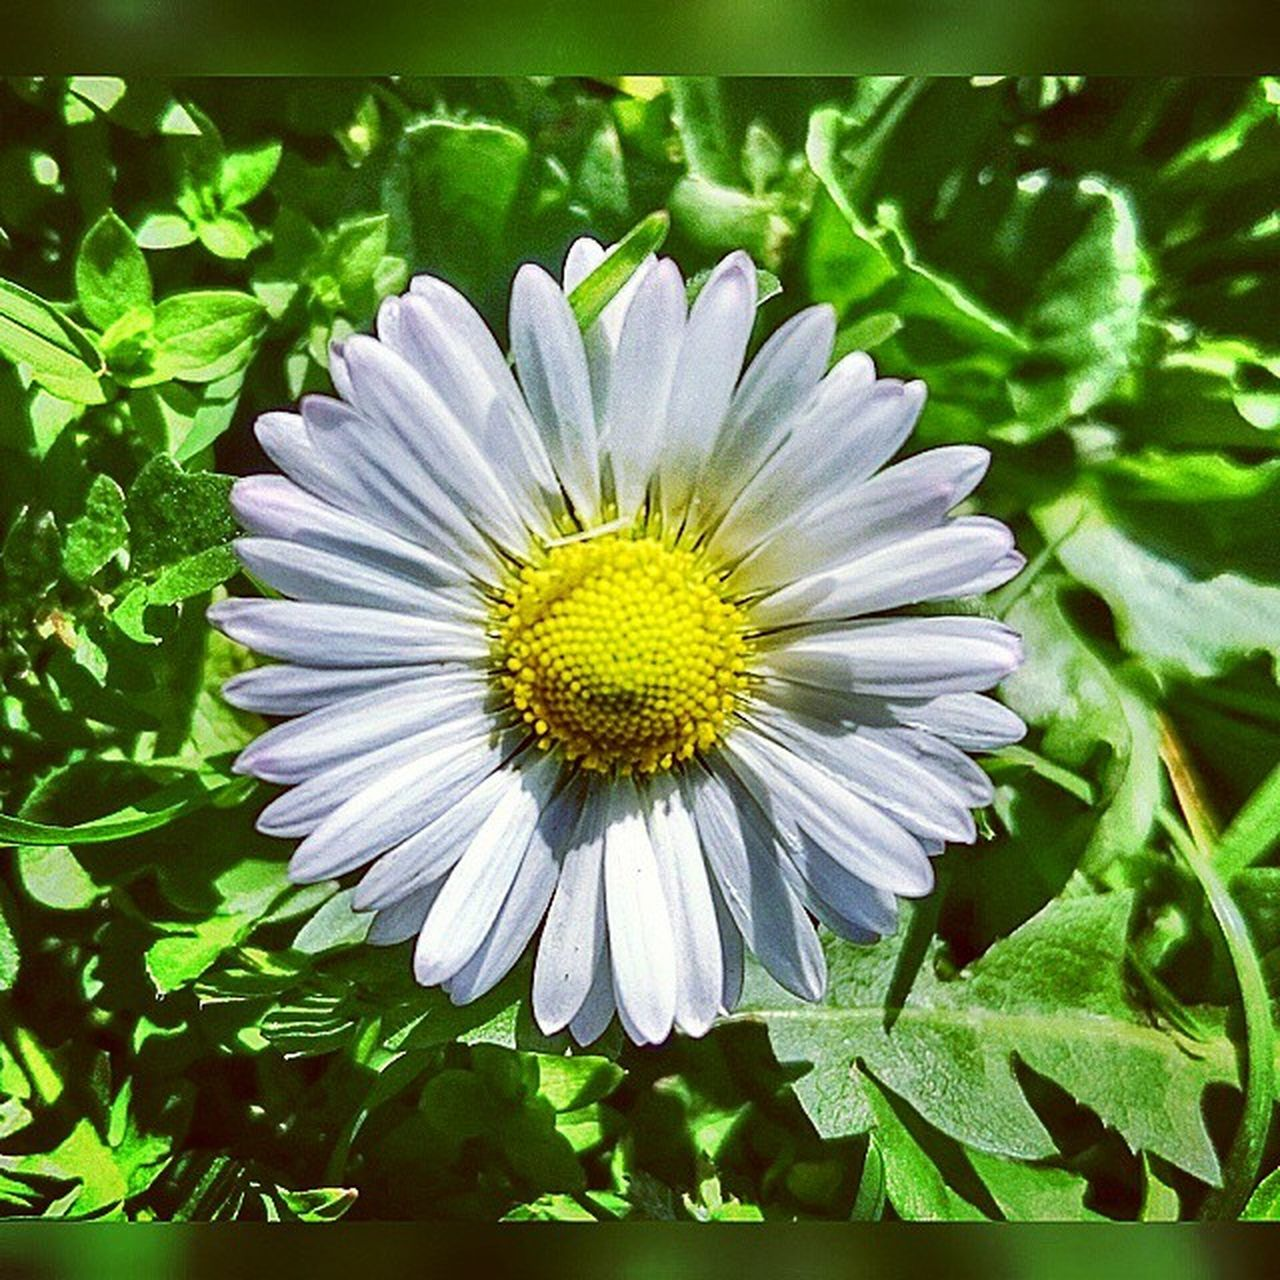 flower, petal, fragility, flower head, growth, nature, beauty in nature, freshness, plant, no people, outdoors, green color, day, pollen, close-up, stamen, blooming, summer, beauty